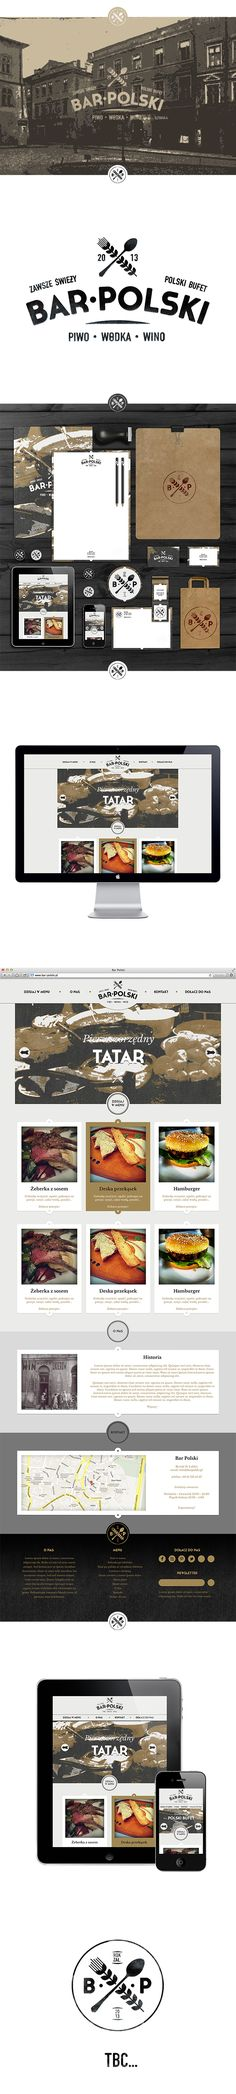 Restaurant branding - print and web design, good mix of retro and modern - love the black and white photography Corporate Design, Brand Identity Design, Graphic Design Branding, Typography Design, Packaging Design, Logo Design, Print Design, Corporate Identity, Food Branding